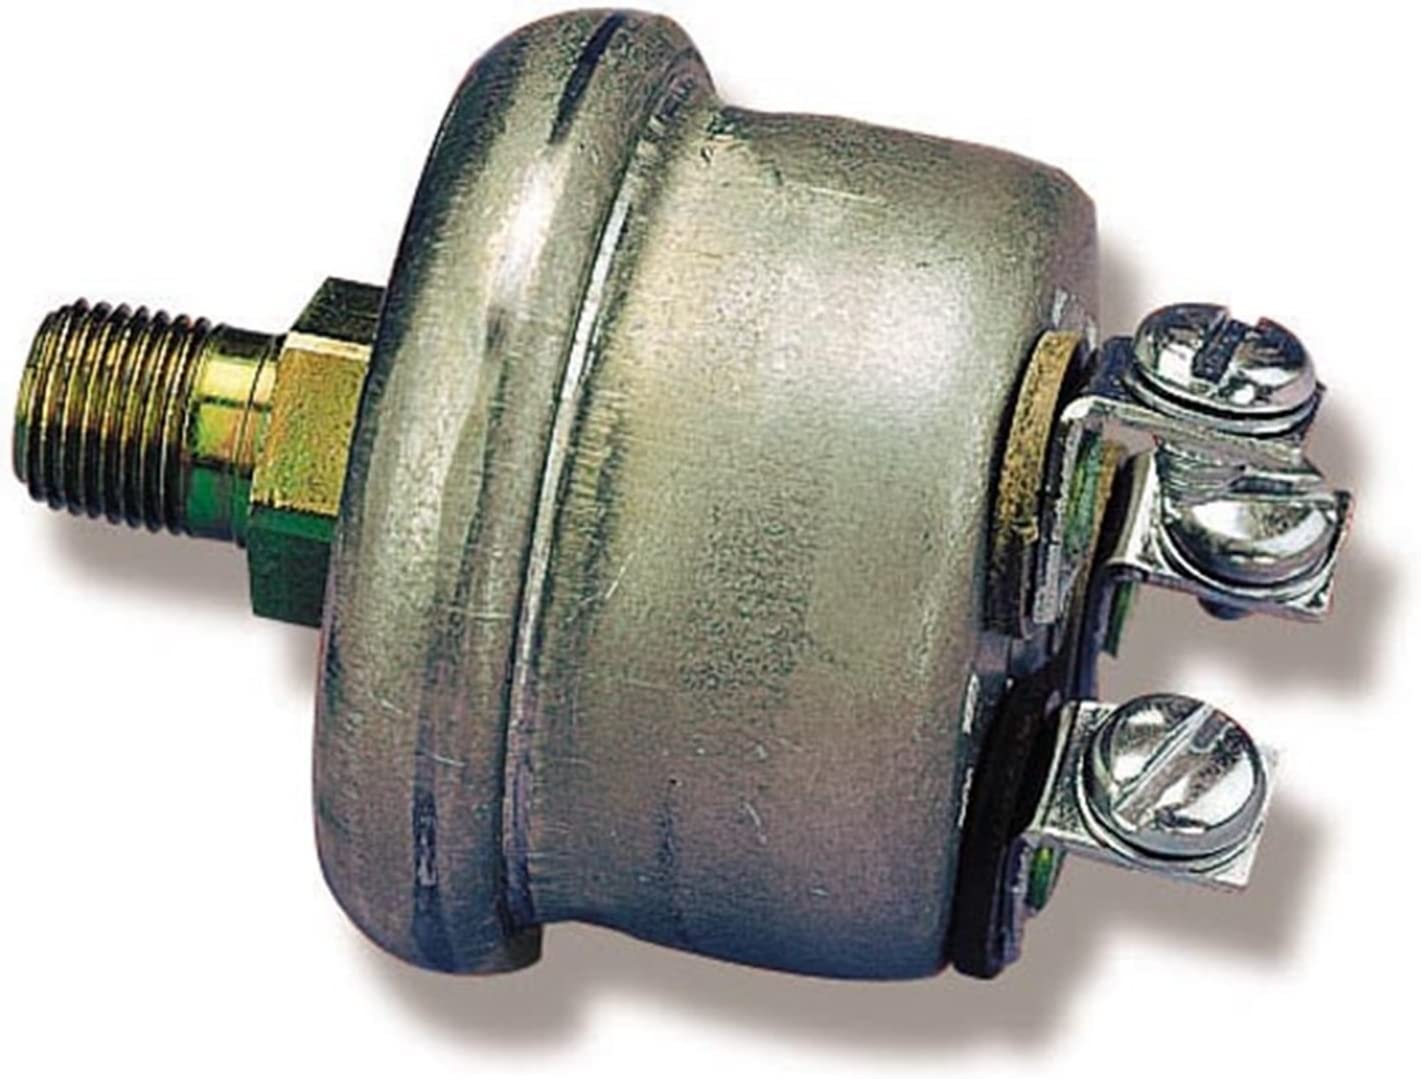 Holley Performance PRESSURE SAFETY SWITCH 12-810